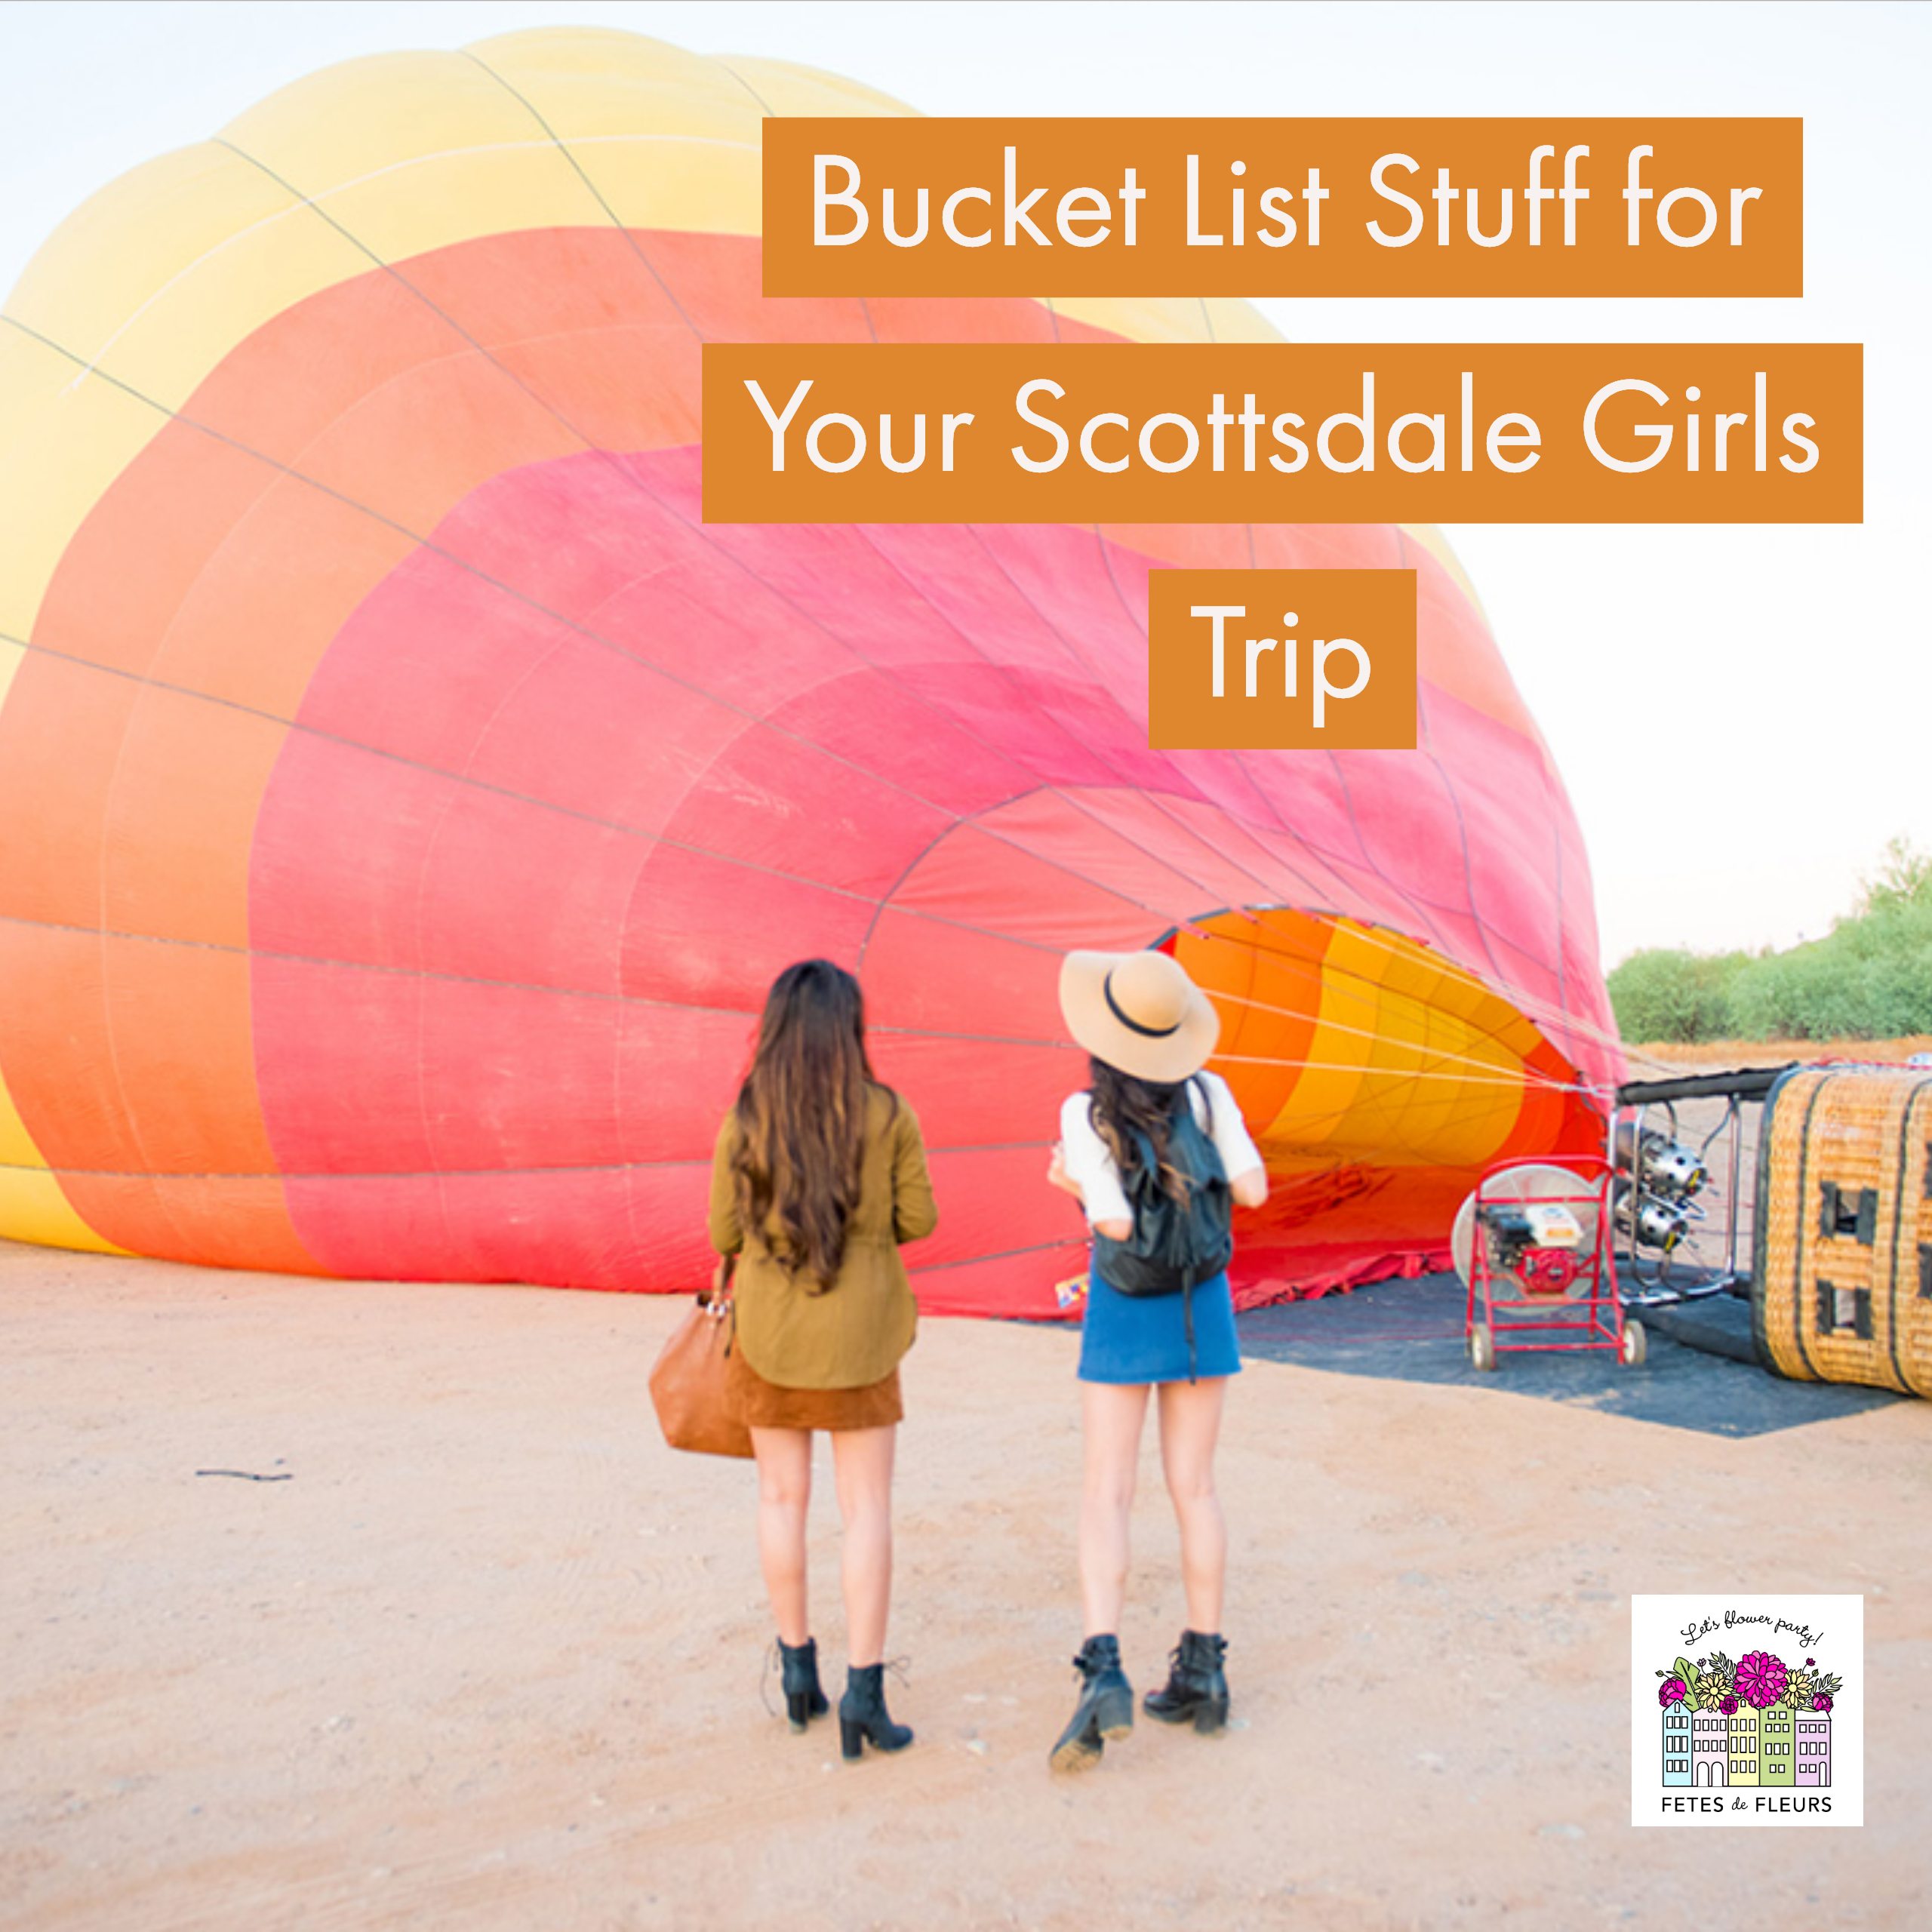 hot air balloon ride for your scottsdale girls trip